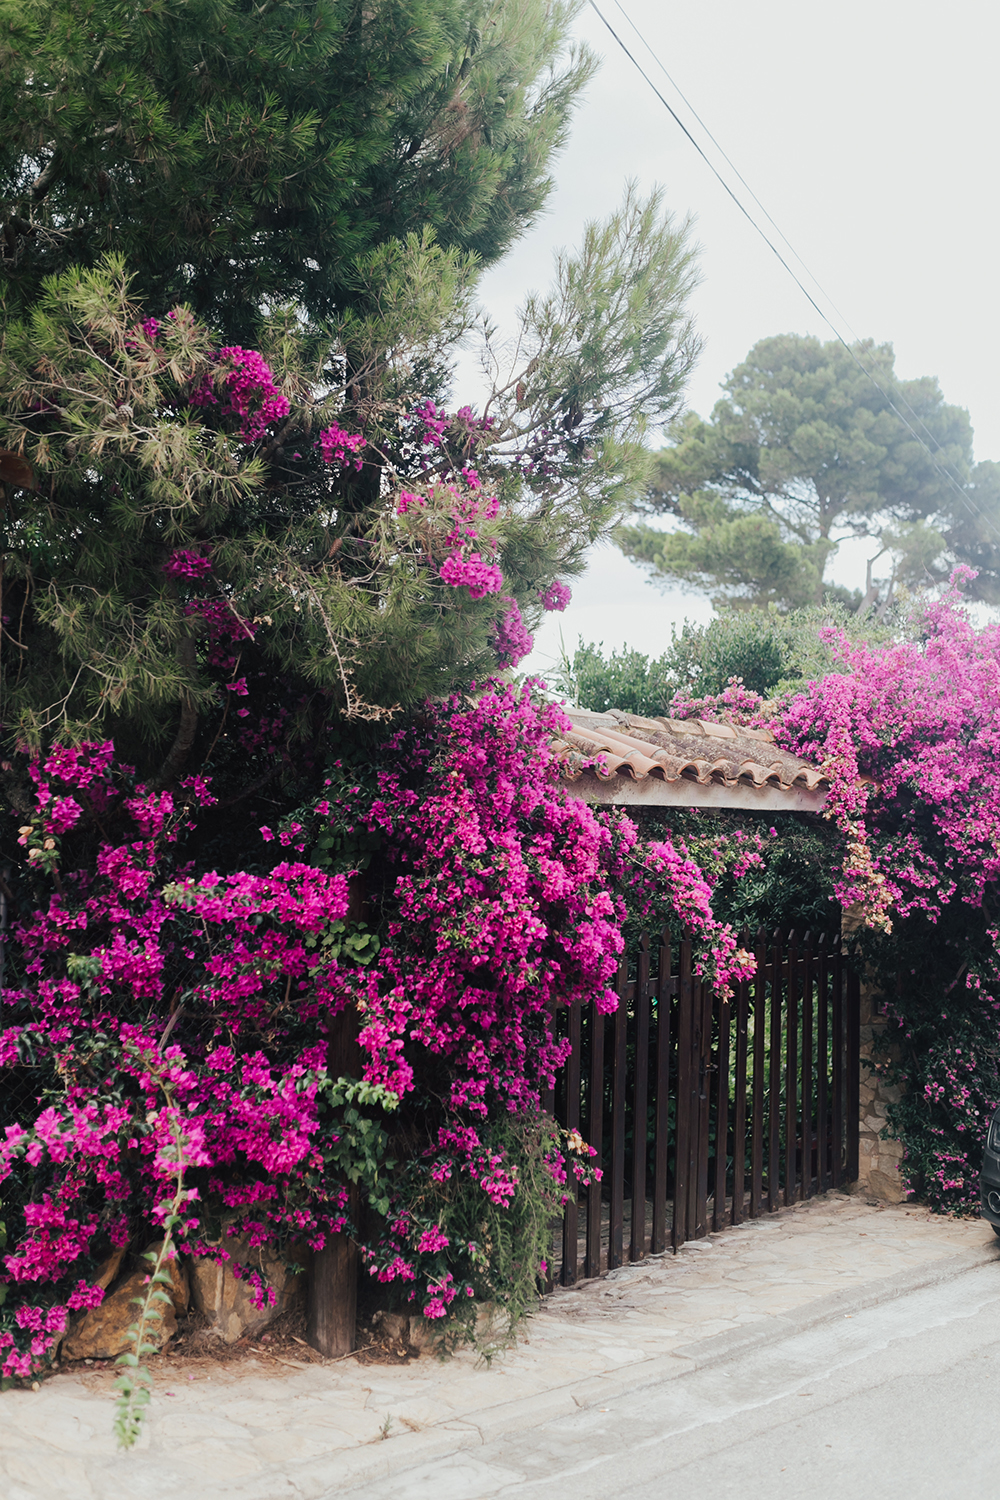 livvyland-blog-olivia-watson-travel-fashion-blogger-barcelona-spain-costa-brava-pals-beach-catalonia-bougainvillea